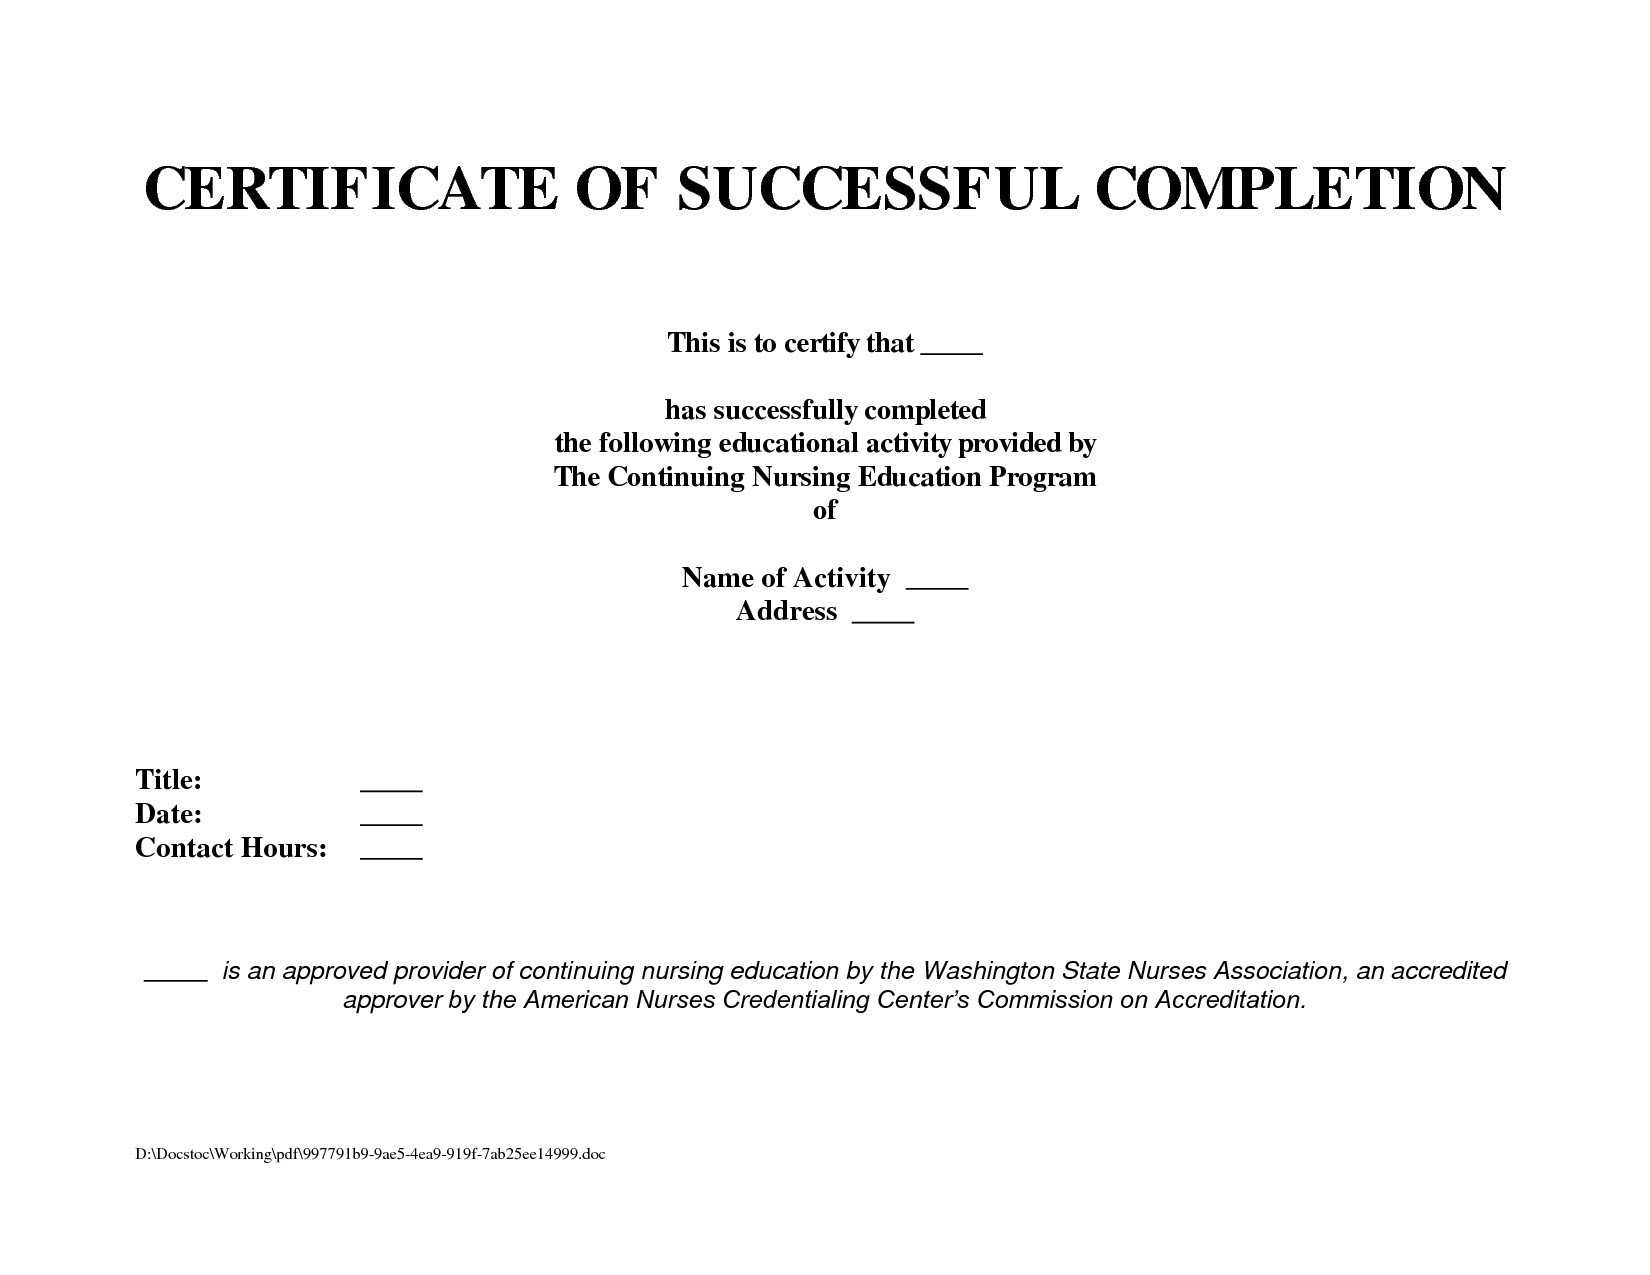 10 Template For A Certificate Of Completion | Business Letter With Construction Certificate Of Completion Template